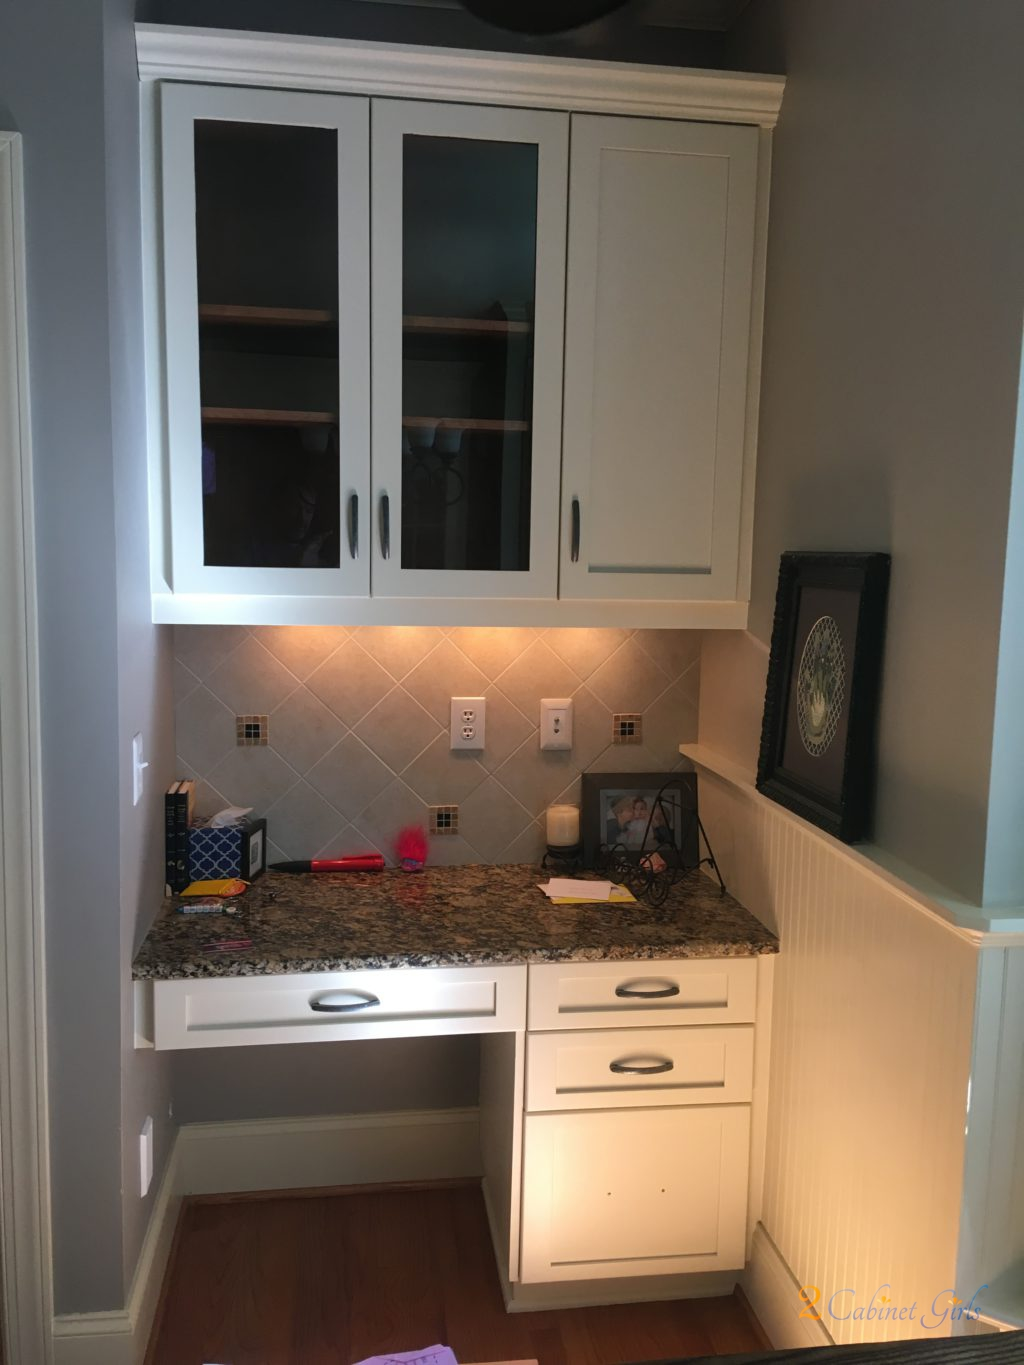 Kitchen Cabinets And Island Painted In Wake Forest S